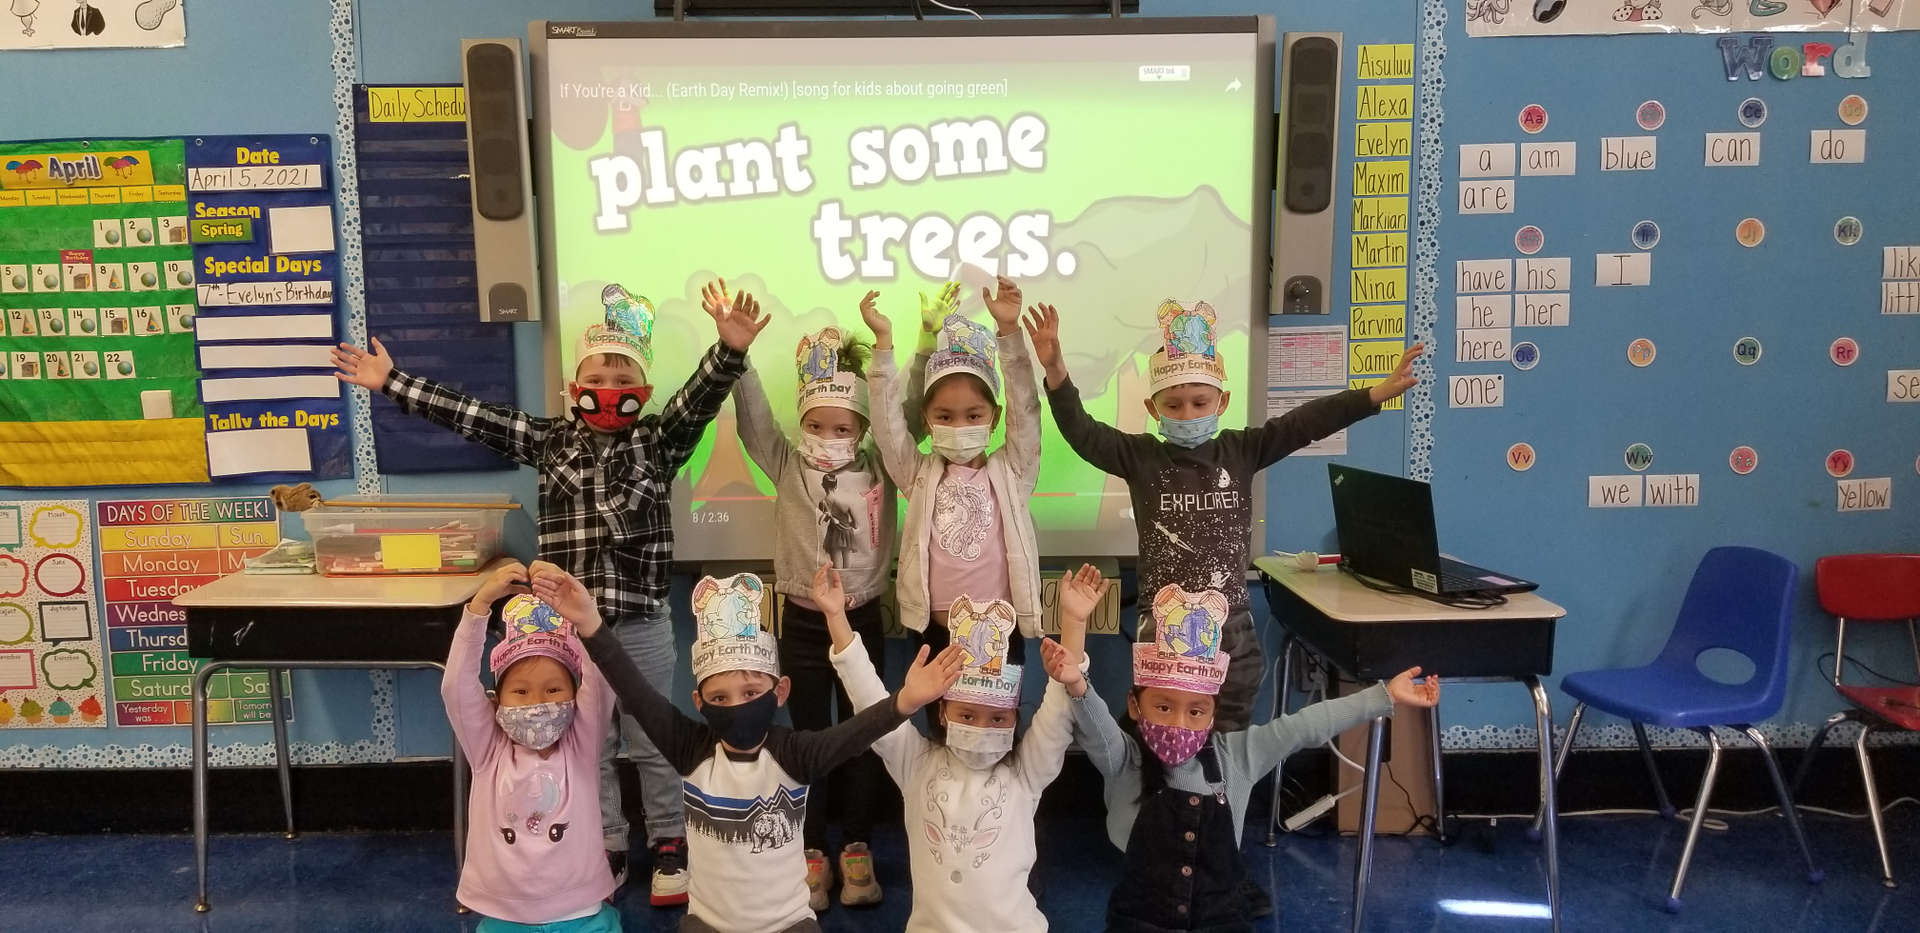 Early elementary school students celebrating Earth Day.